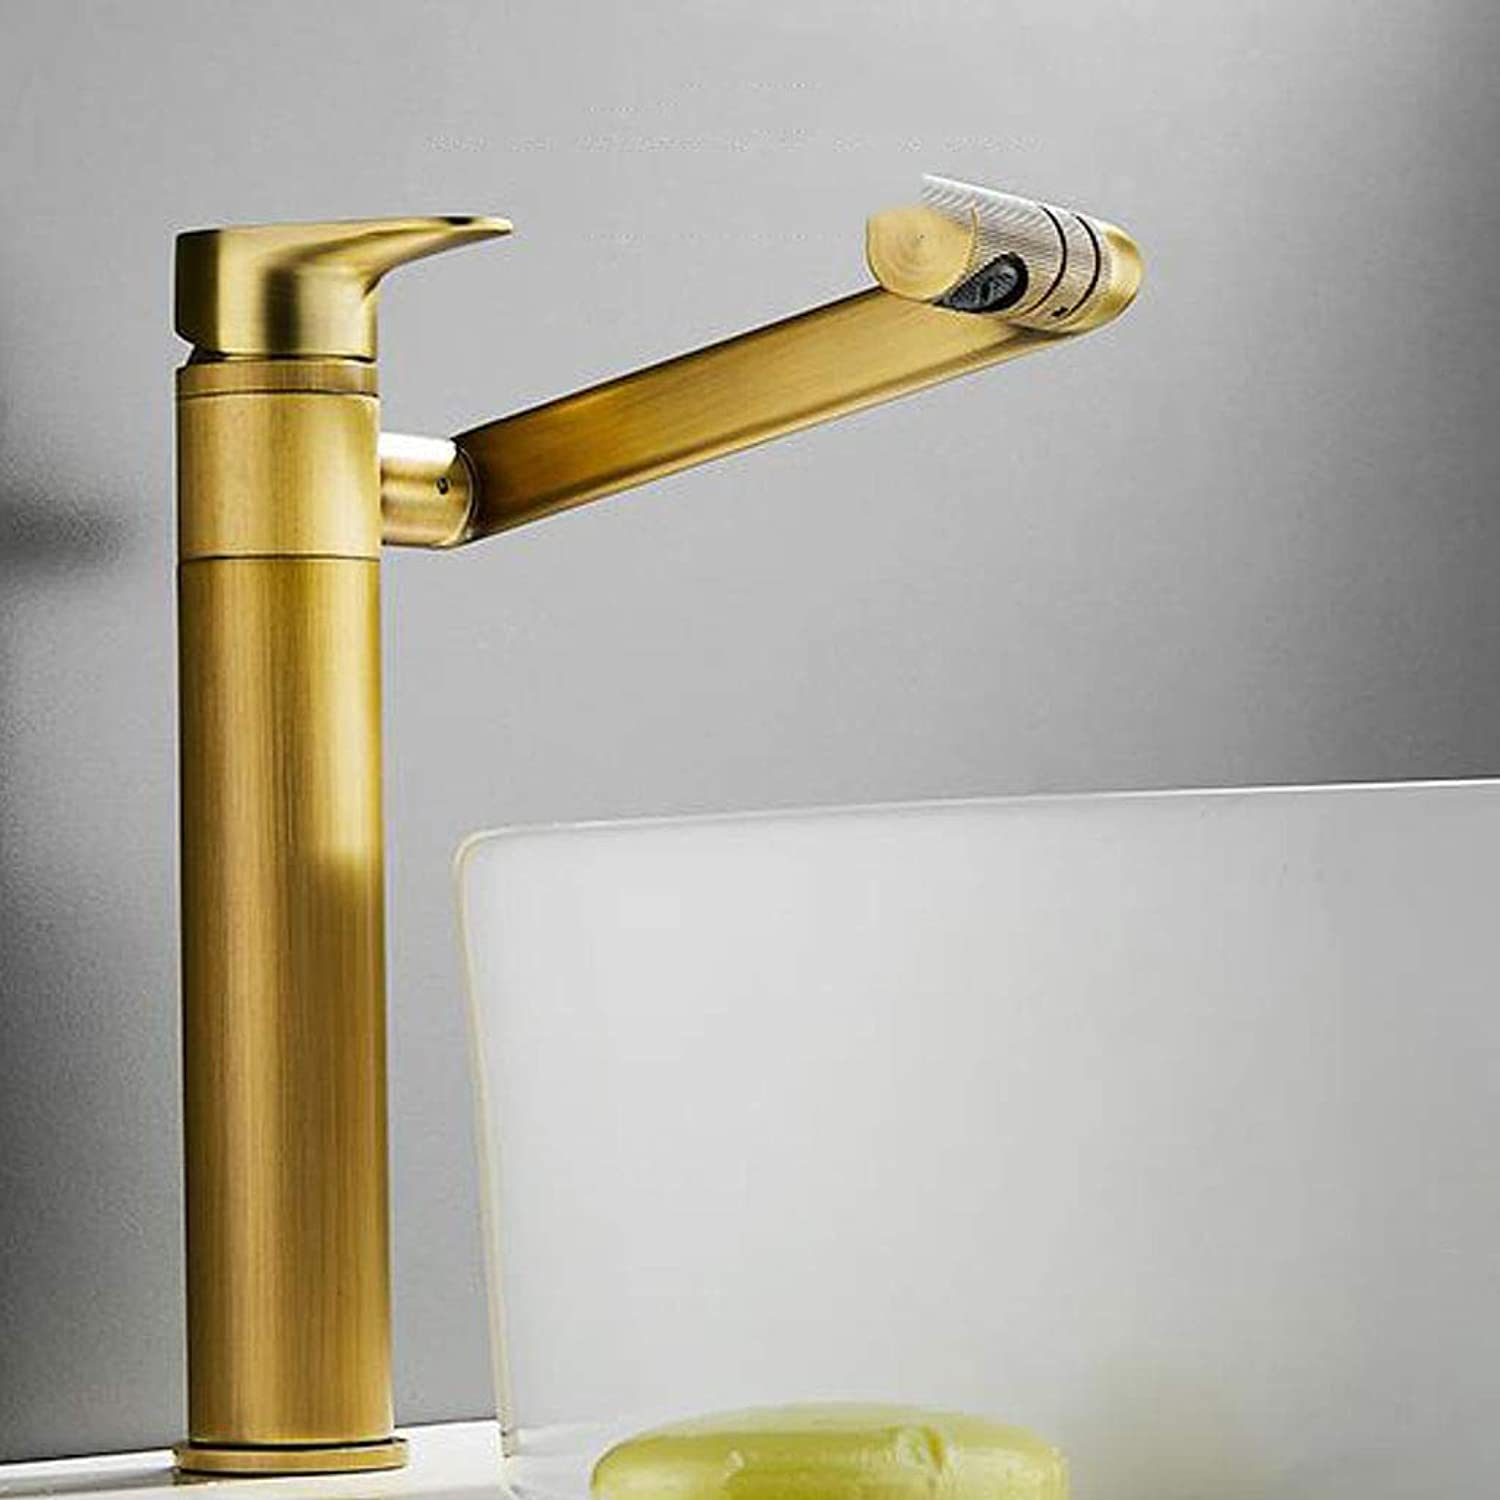 Chrome Finish Basin Faucet,Kitchen Sink Faucet 361redating spout Sink Mixer Commercial Mixer Modern Commercial Single Lever Pull Kitchen-B